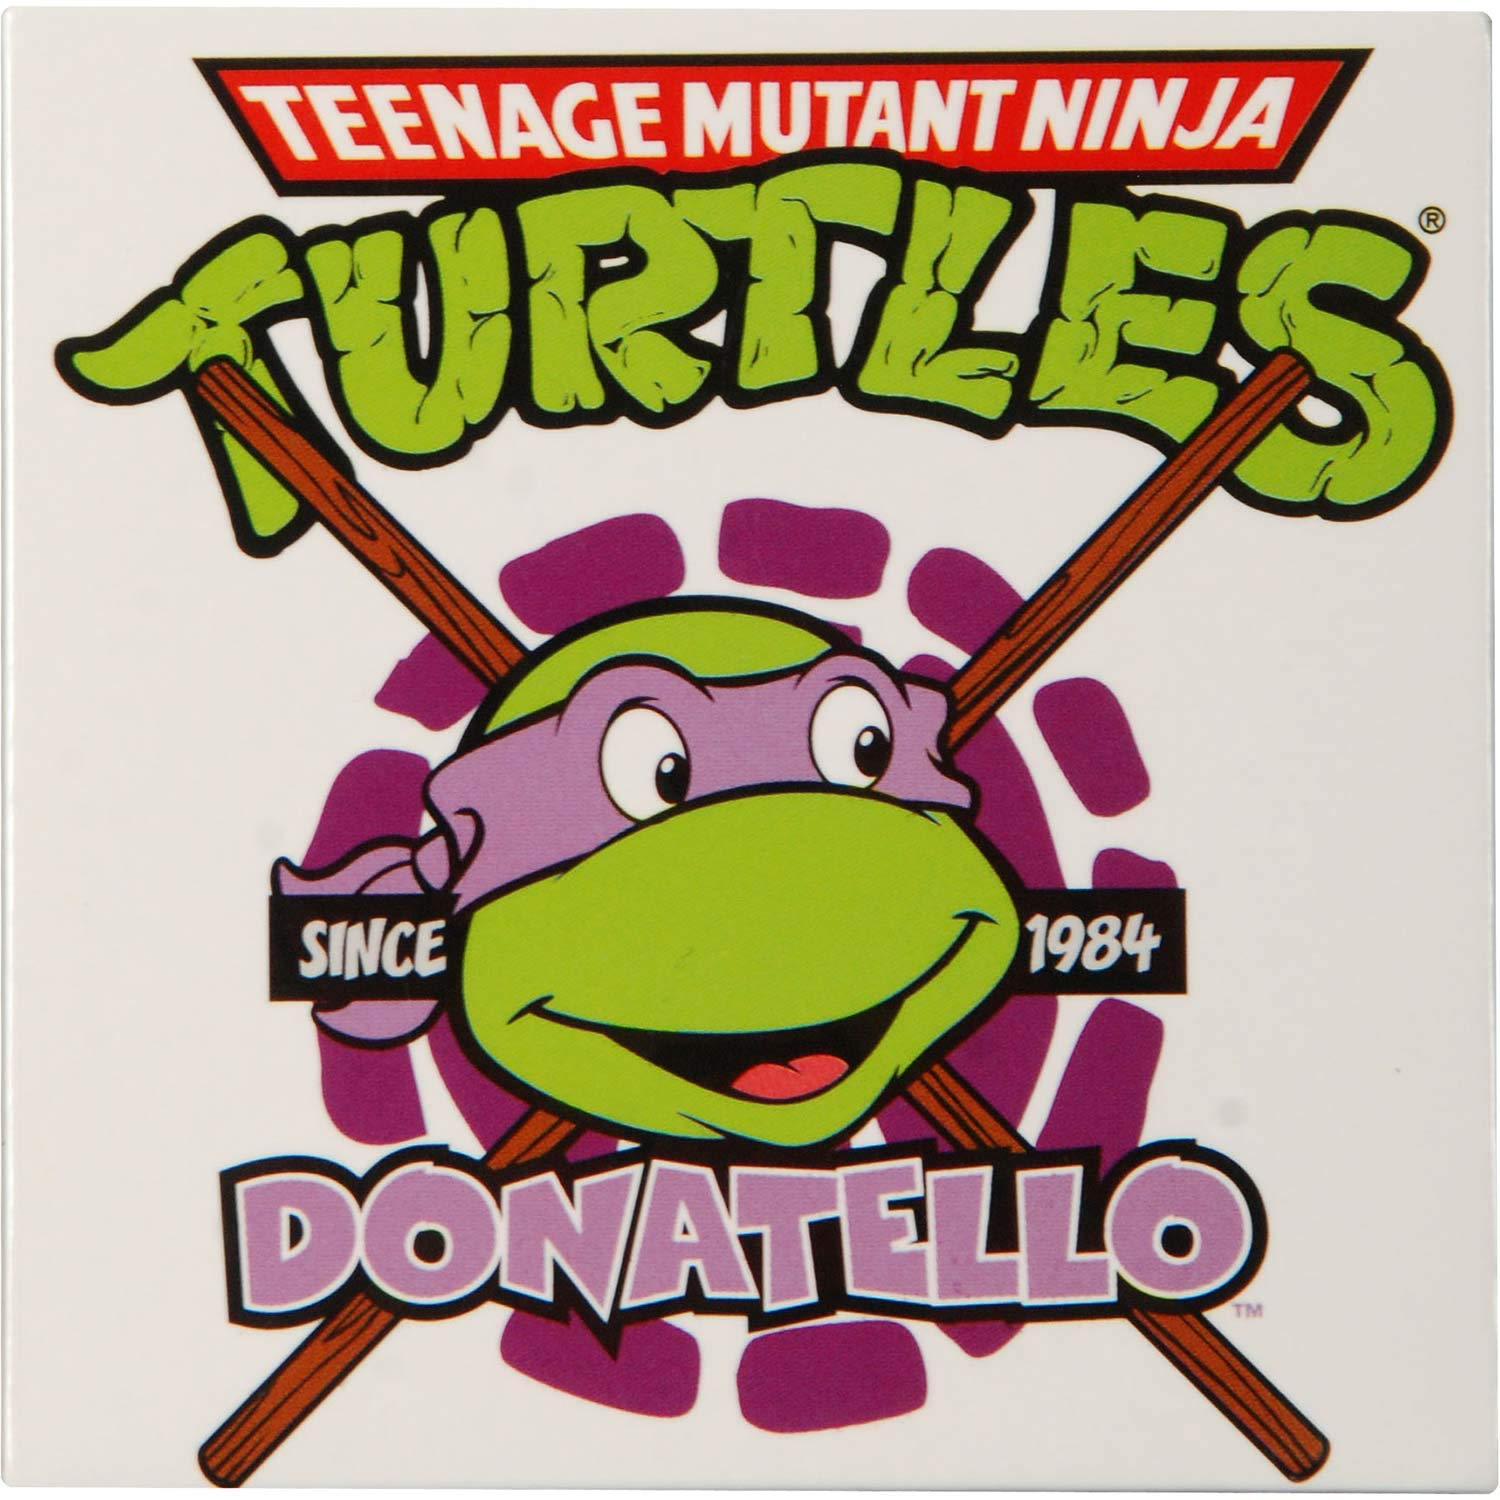 Teenage Mutant Ninja Turtles Donatello Metal Fridge Magnet ...